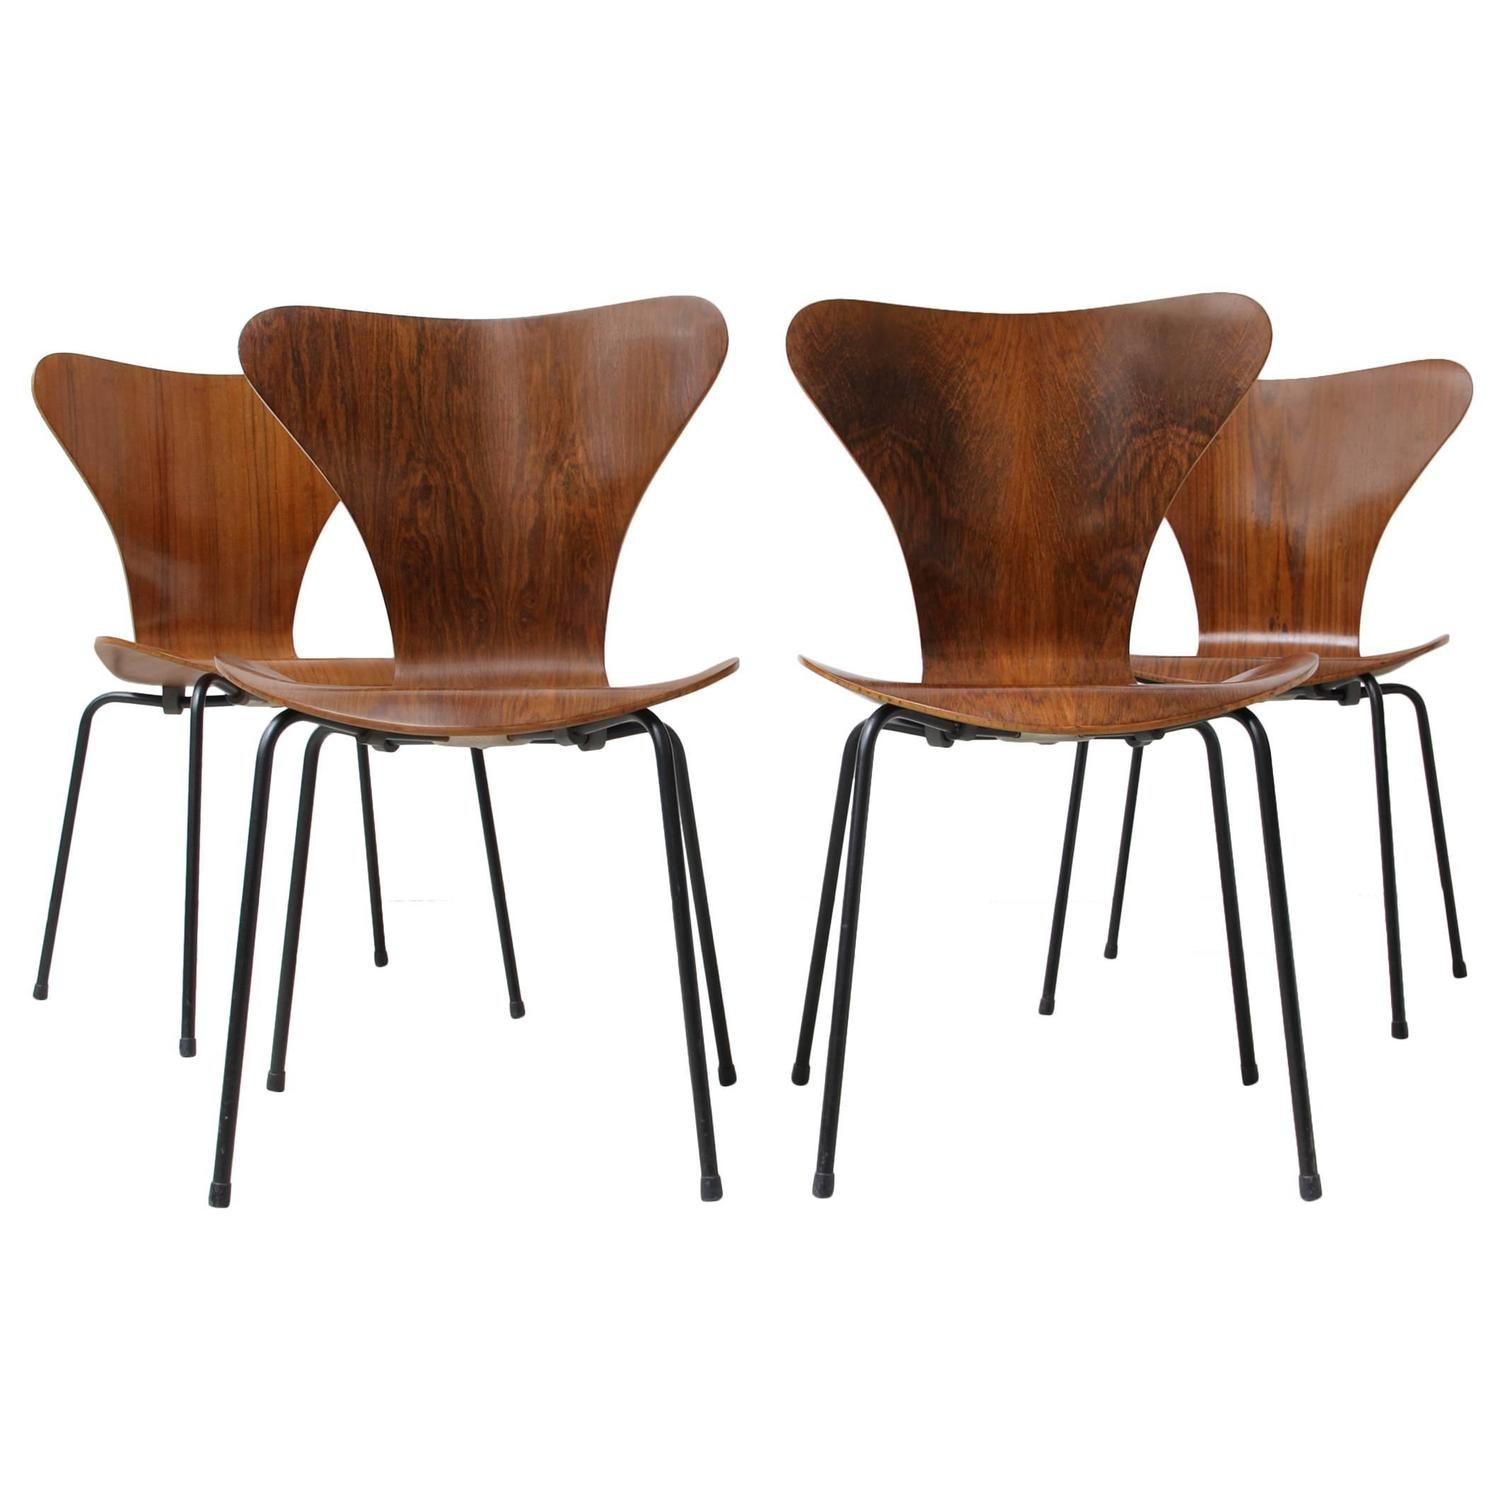 set of four series 7 rosewood chairs by arne jacobsen. Black Bedroom Furniture Sets. Home Design Ideas